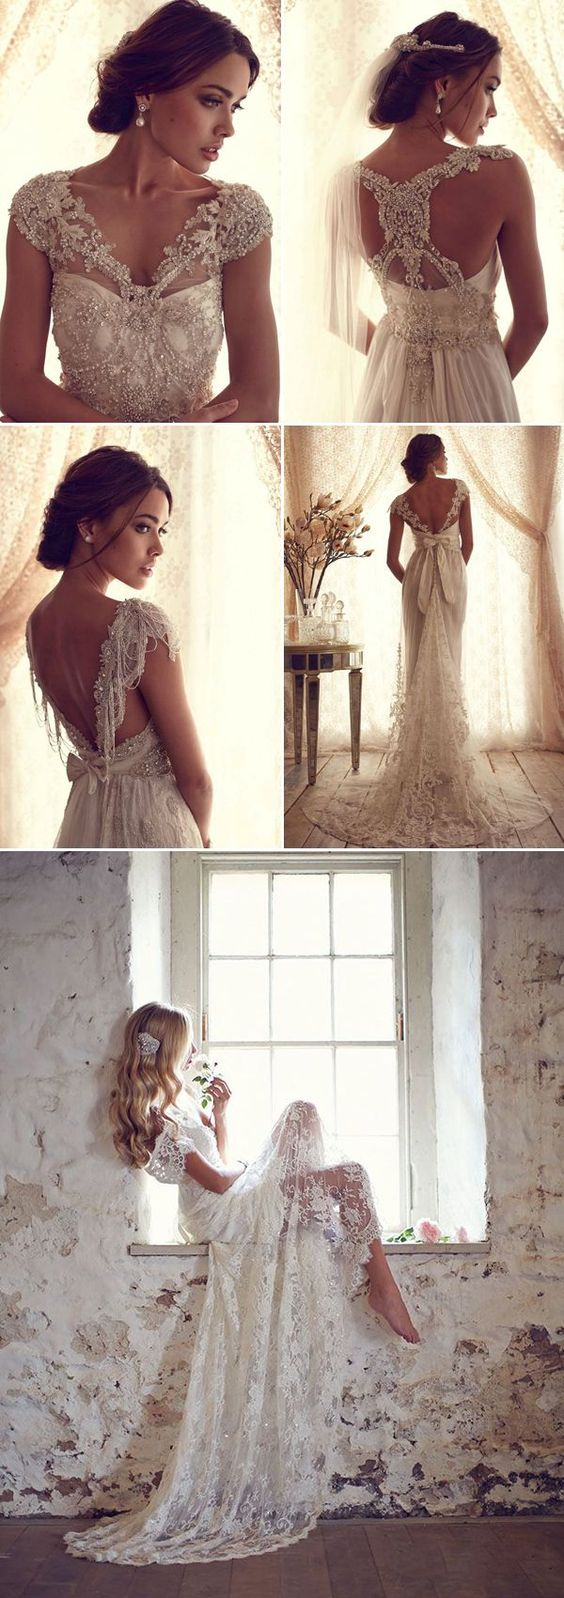 "48 Prettiest Vintage Wedding Dresses You Will Love!-**EXPLORE an Amazing Collection of ""Theme Matching Wedding Invitation Sets"" GO TO ... http://www.zazzle.com/weddinginvitationkit"